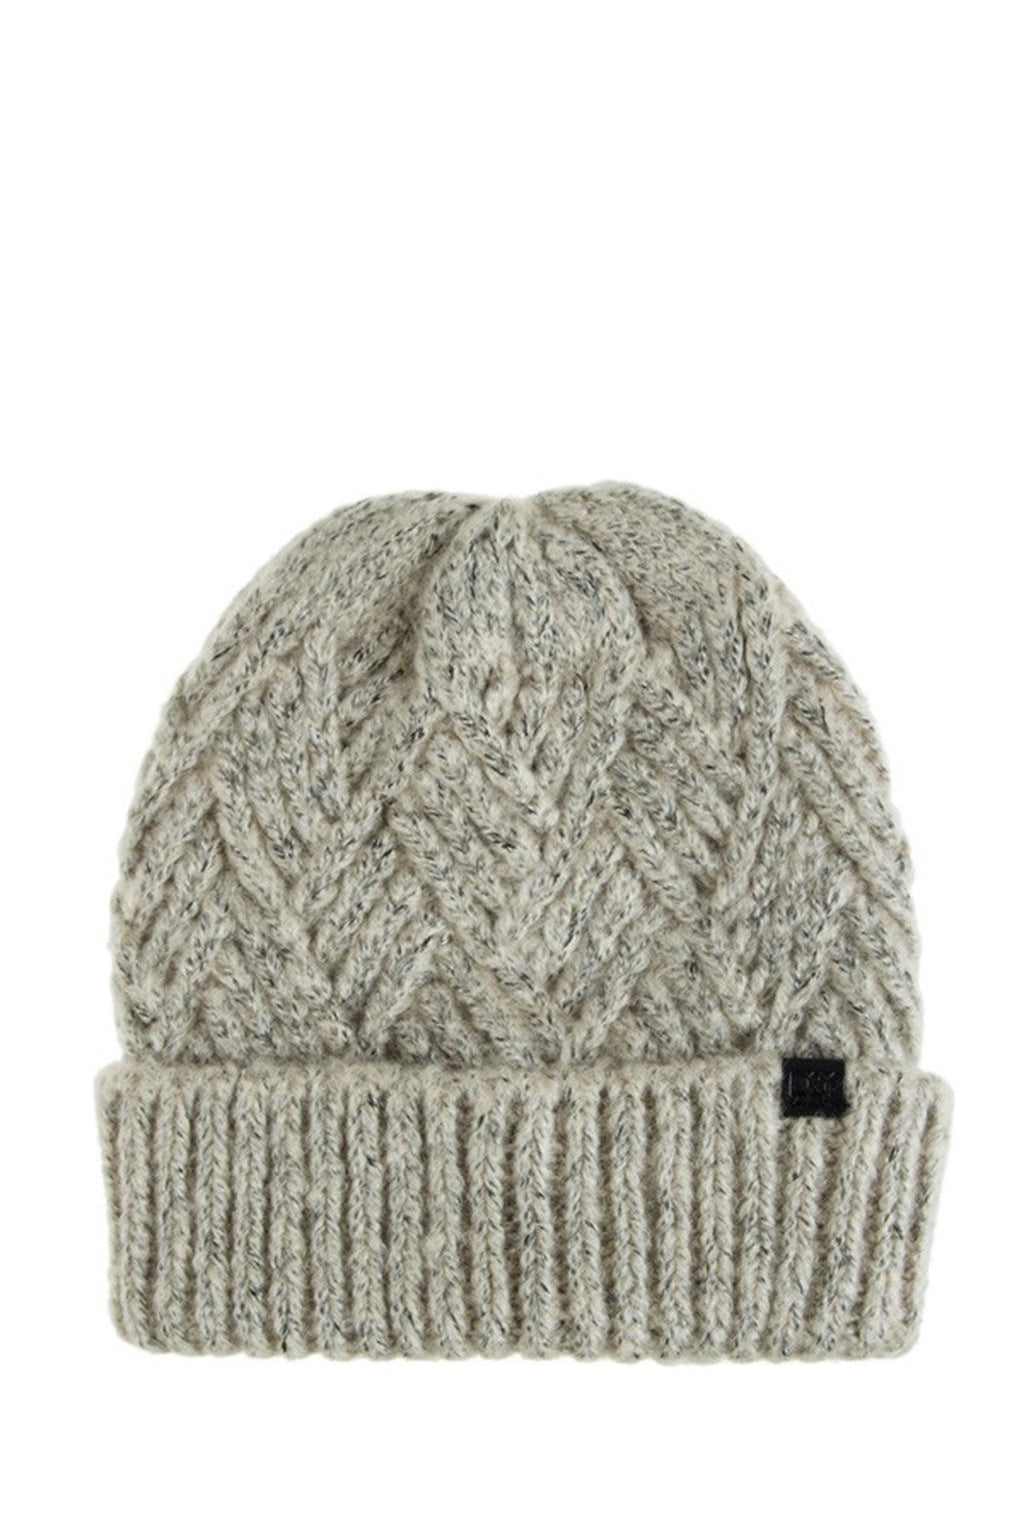 EcoVibe Style - Diamond Basked Weave Beanie in Beige, Hat